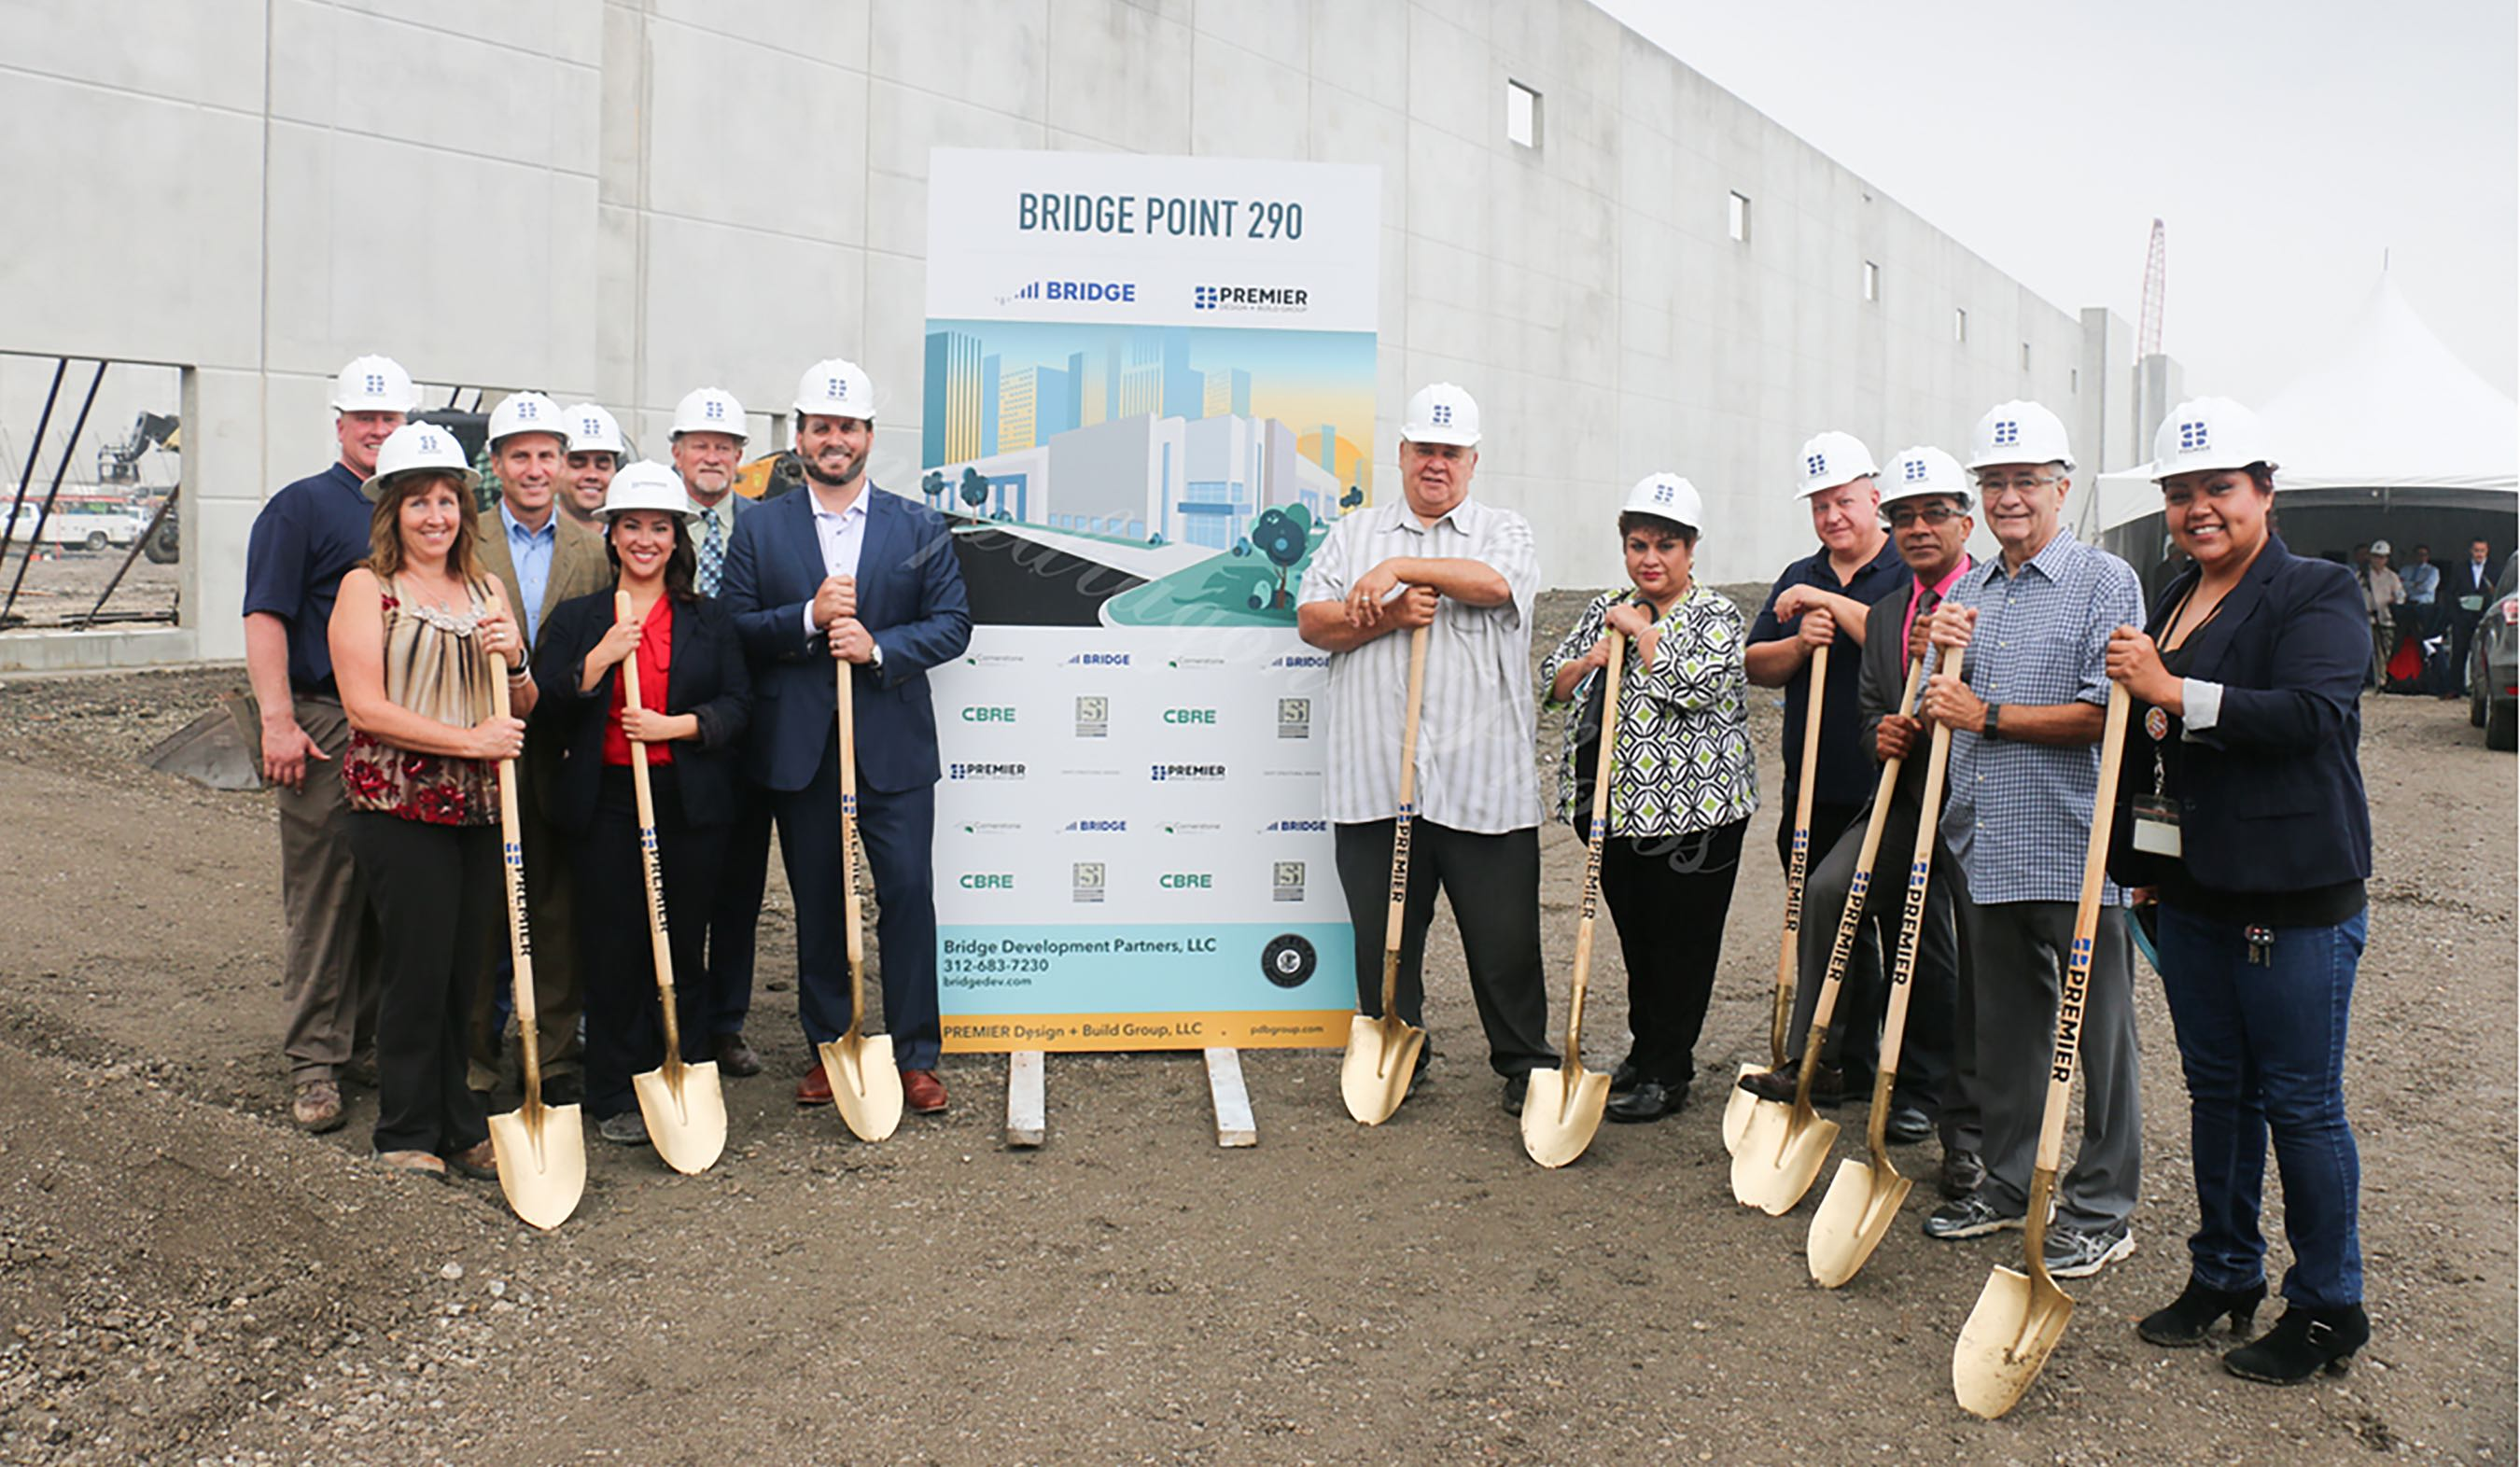 Premier Design Build Group Llc Celebrates Groundbreaking Of